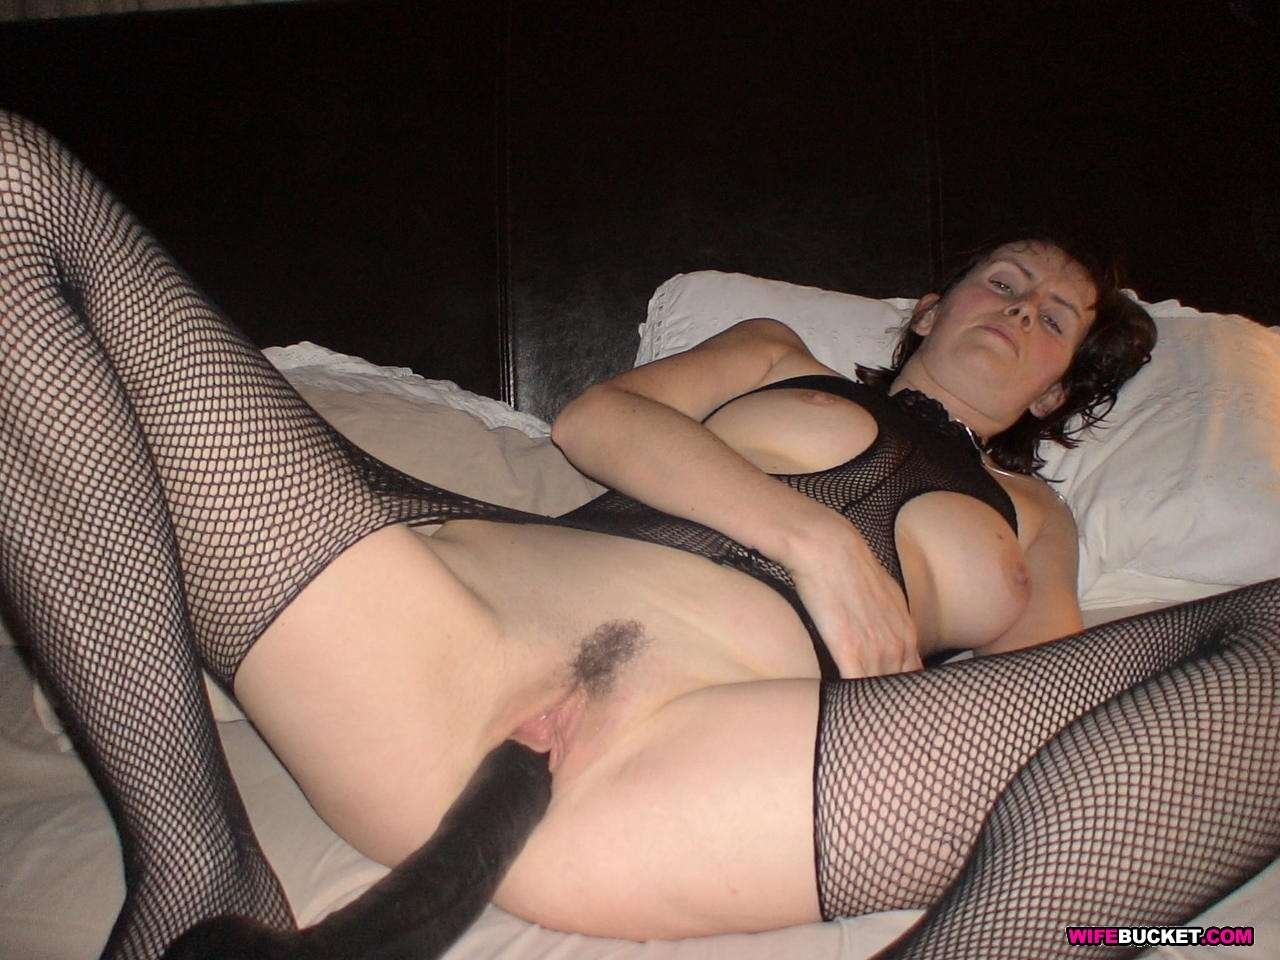 Mom and young amateur